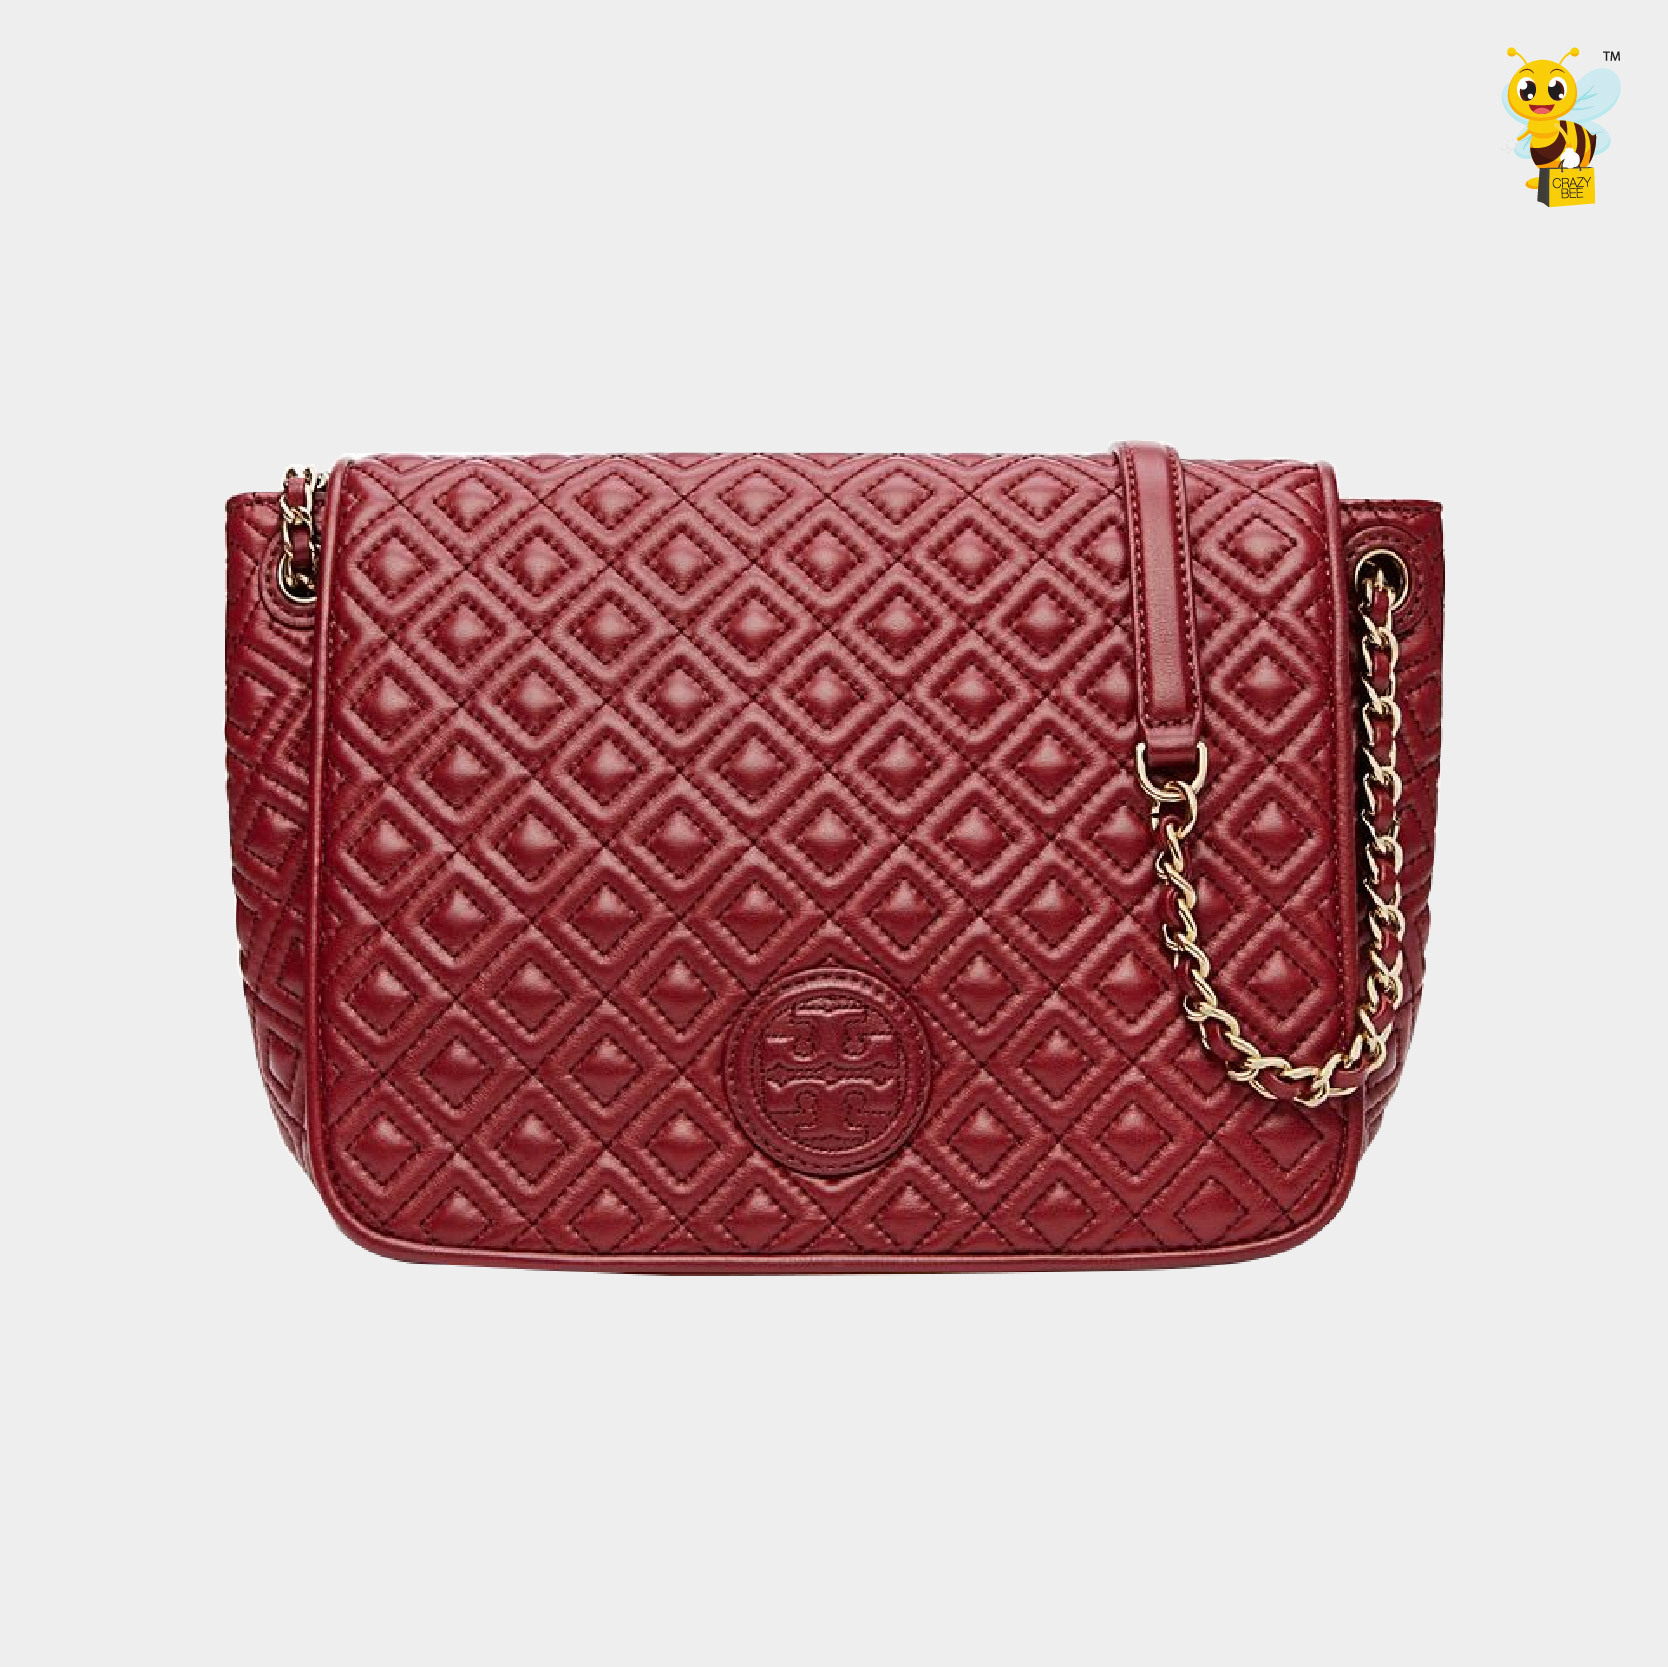 Tory Burch Pre Order Marion Quilted Shoulder Bag Red